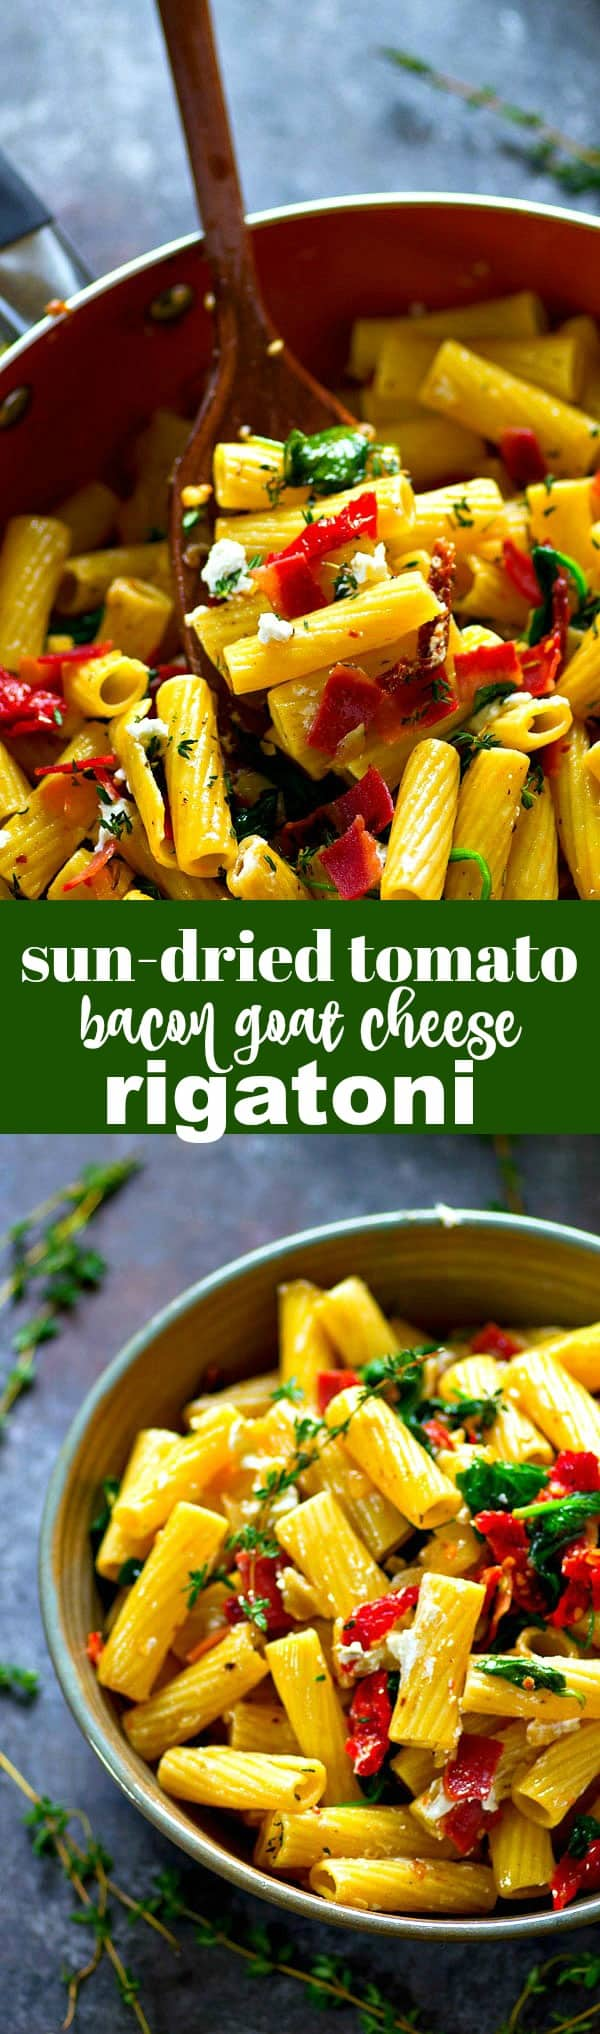 Smoky bacon, tangy sun-dried tomatoes, and soft goat cheese are an INCREDIBLE trio of flavors in this fresh, flavorful sun-dried tomato bacon goat cheese rigatoni!